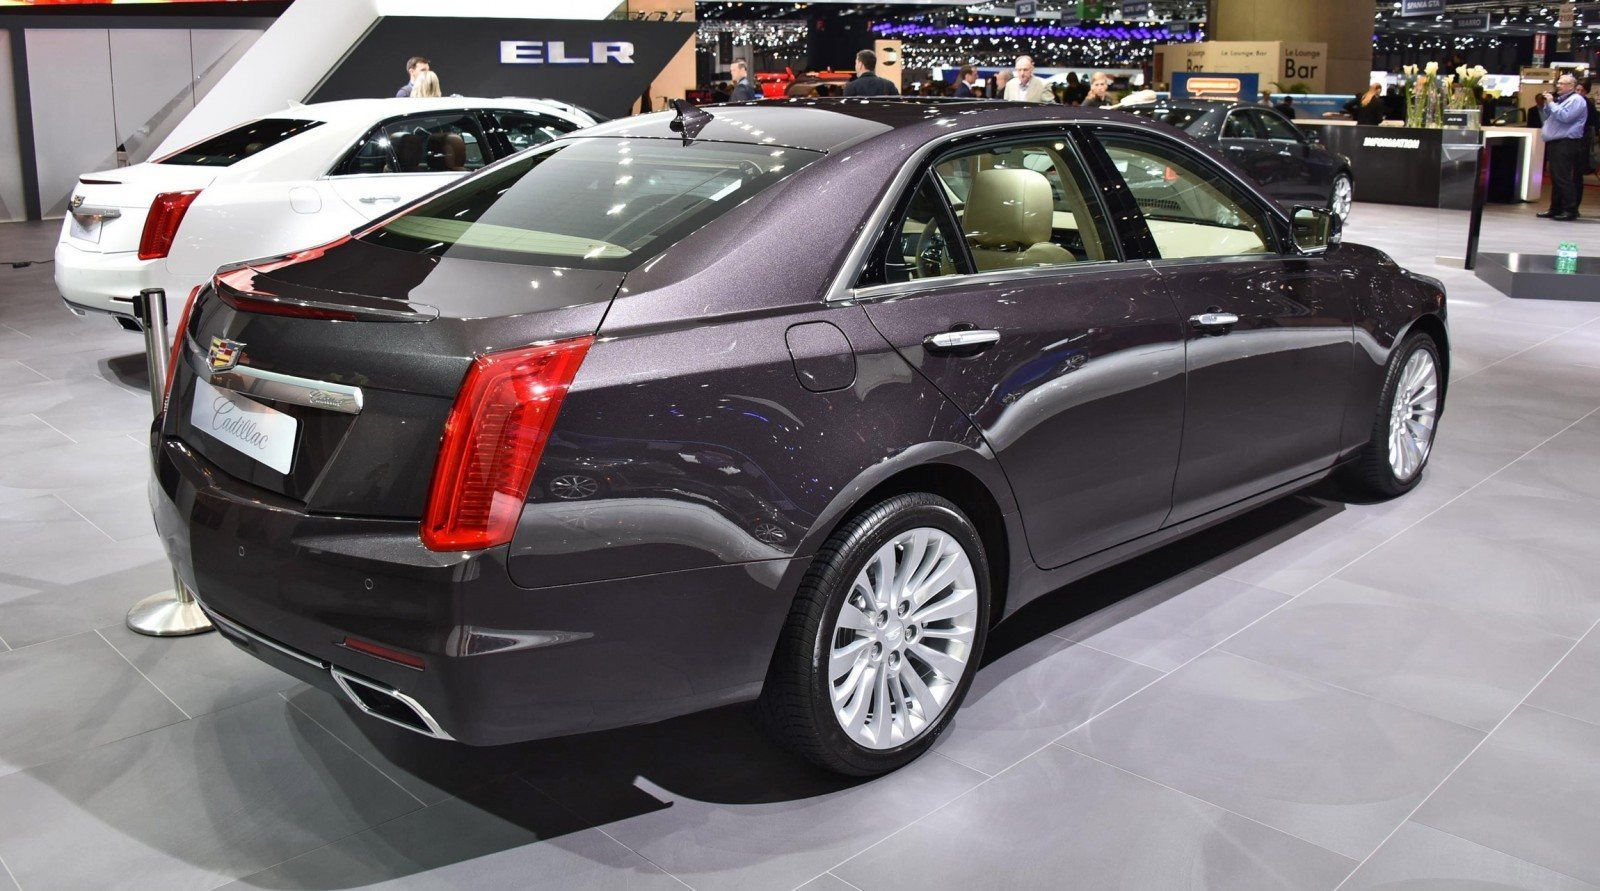 Geneva 2015 Gallery - Cadillac ATS-V and CTS-V + Euro-Spec Escalade Platinum 29